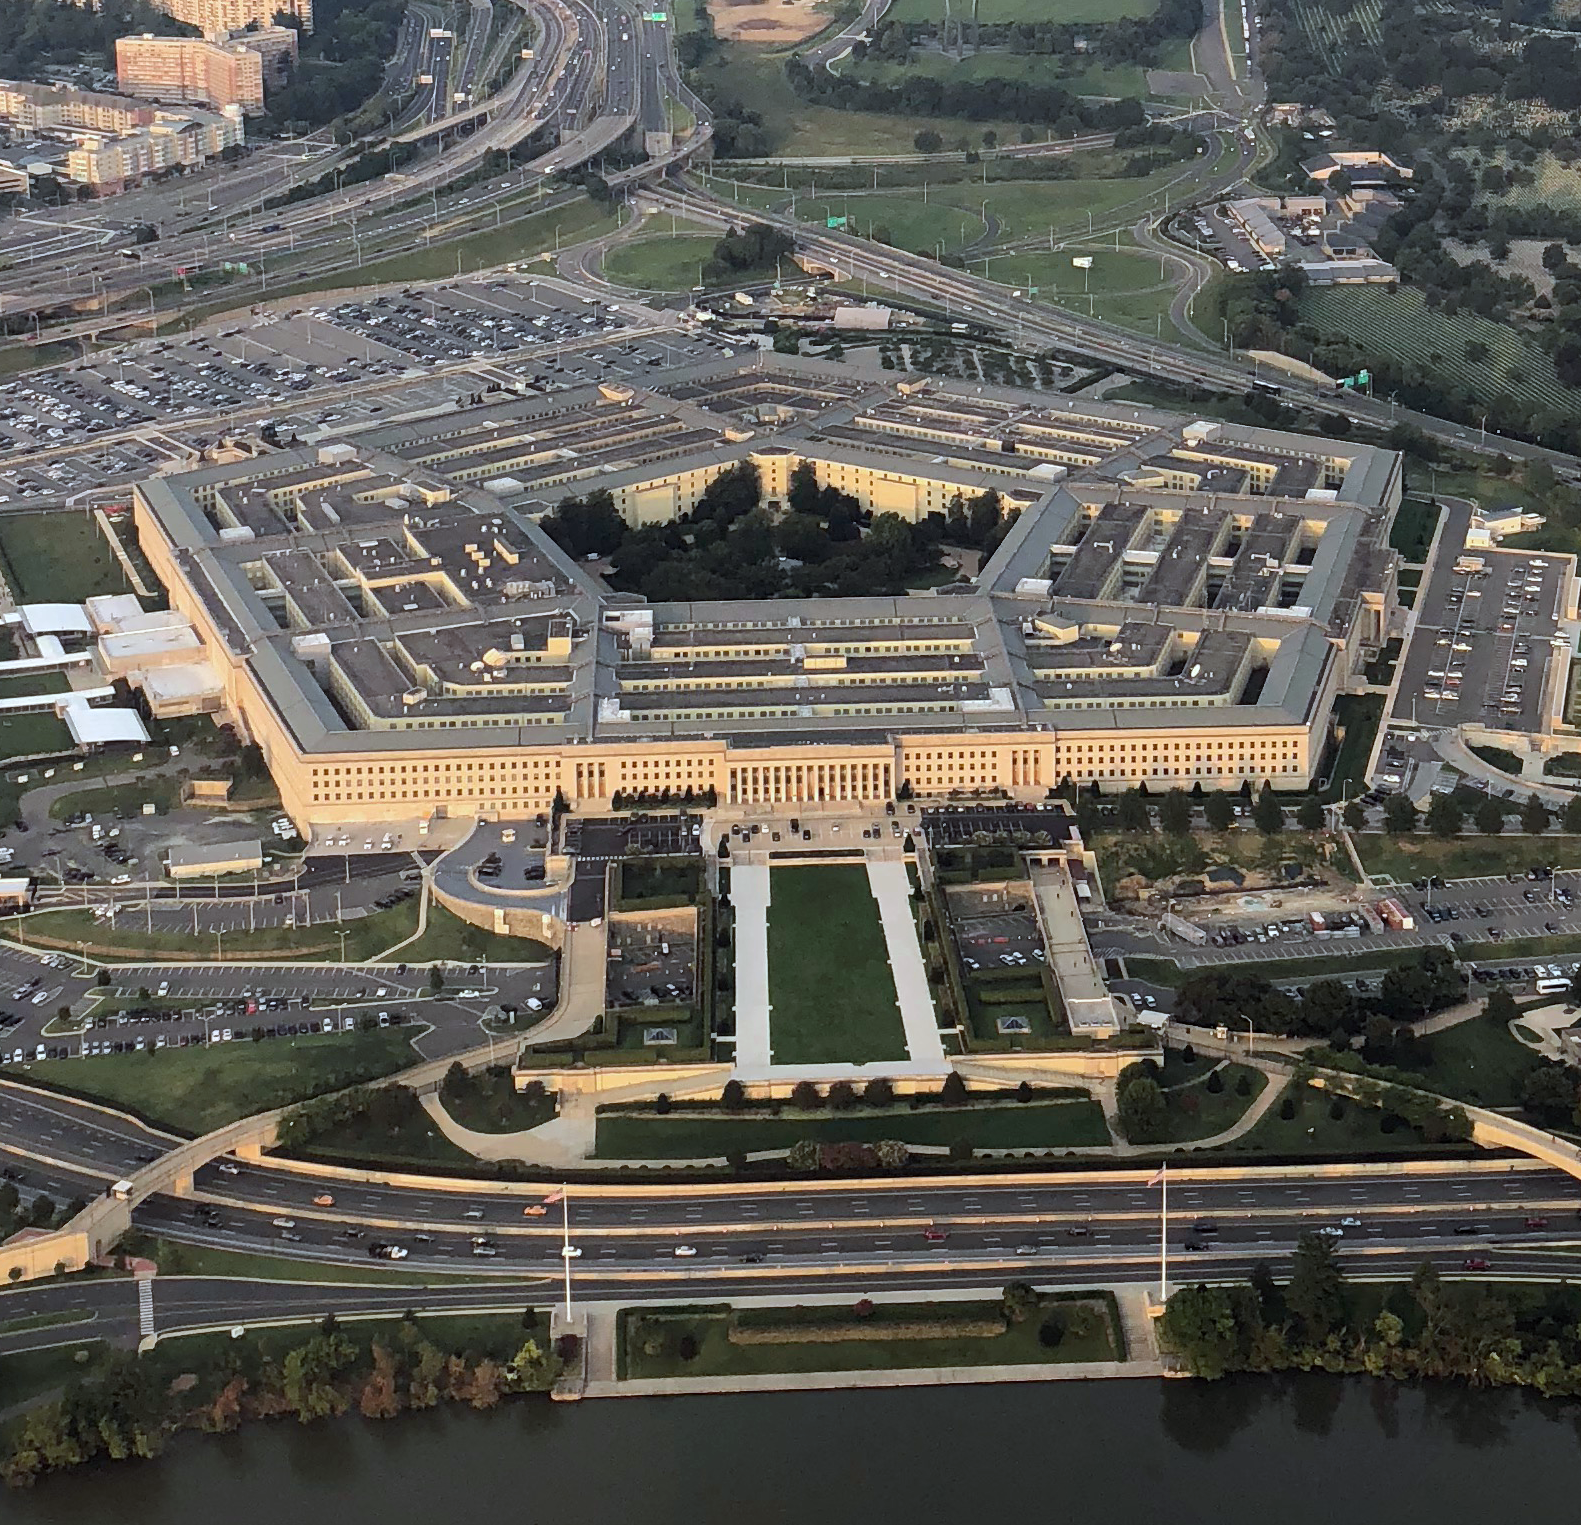 The US Pentagon